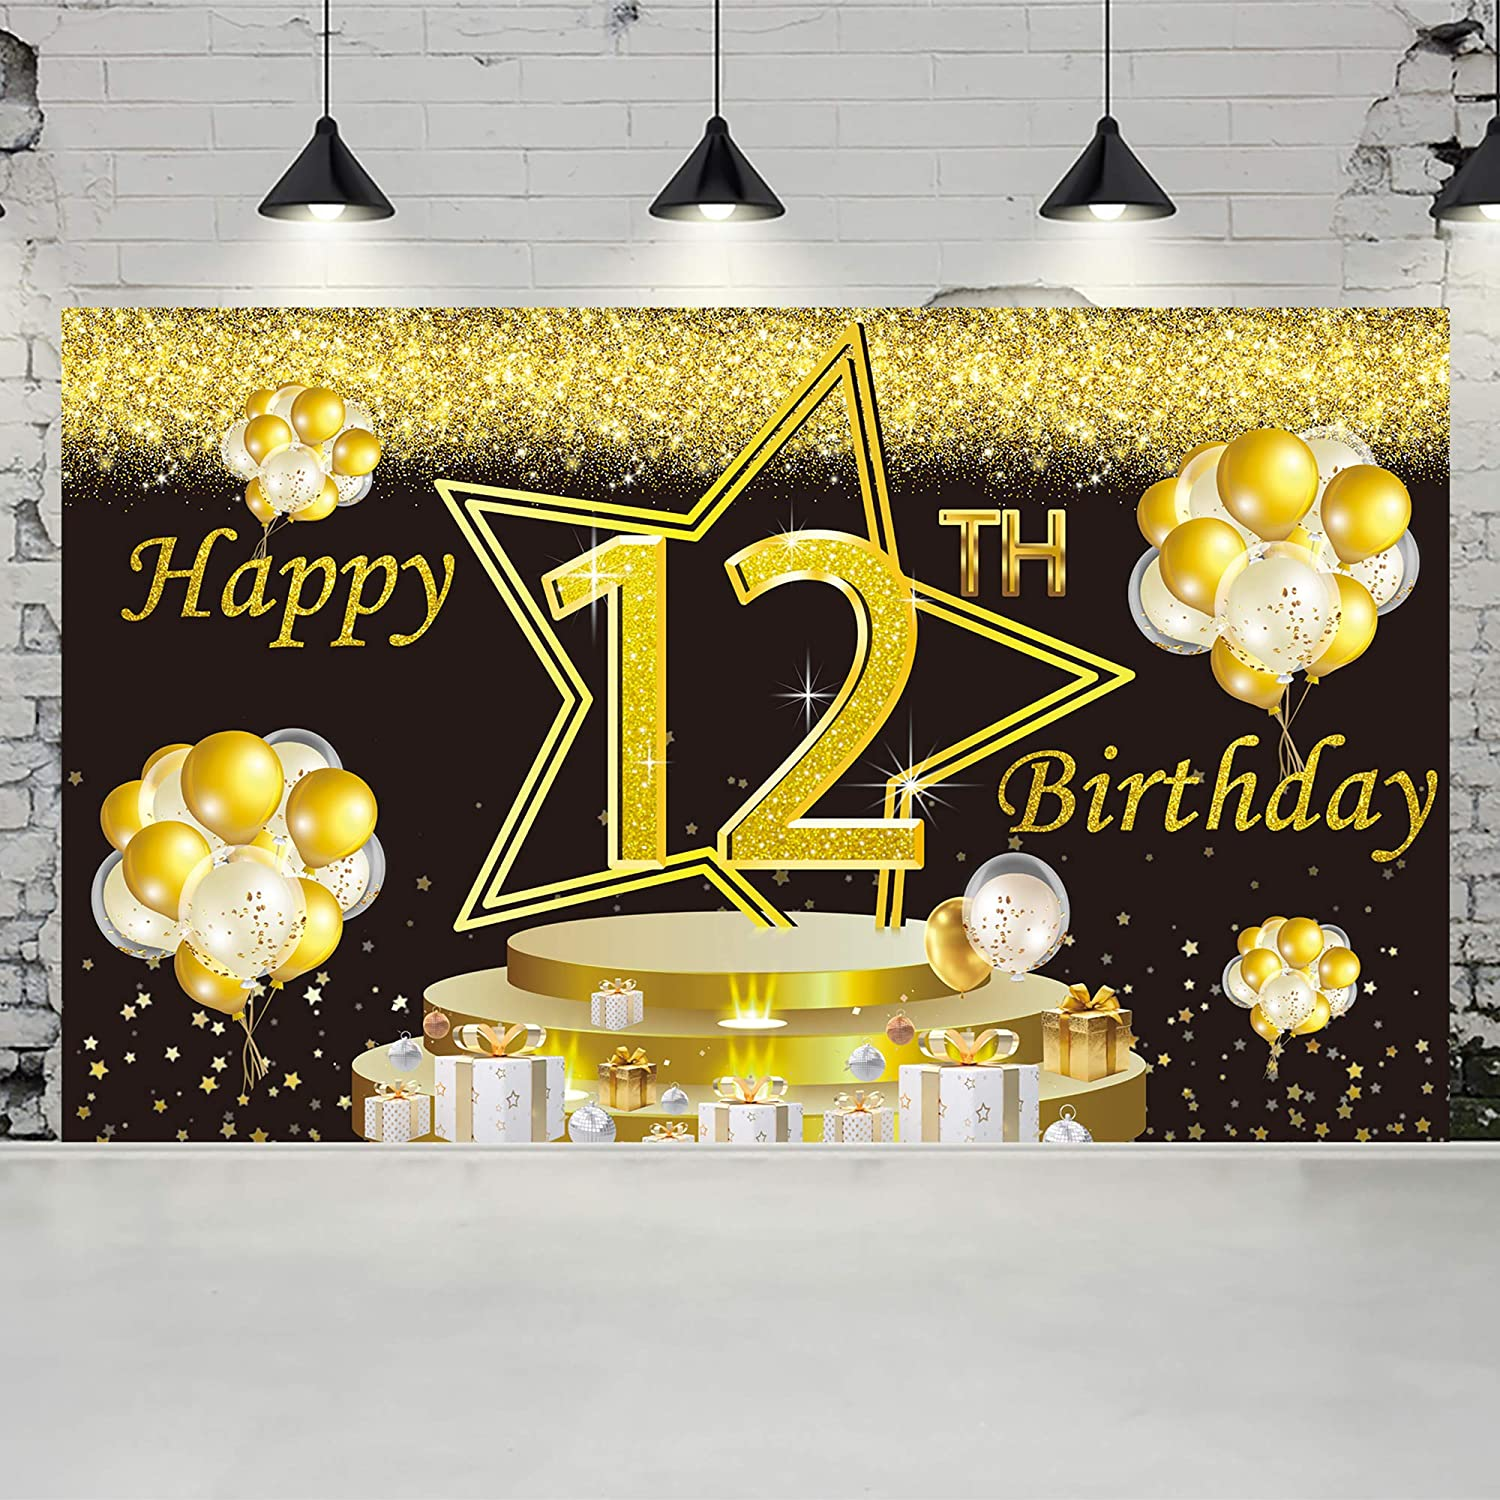 Ushinemi Happy 12th Birthday Backdrop 12 Years Old Birthday Banner Party Decorations, Large Bday Wall Decor Signs, 6X3.6 Ft, Gold and Black